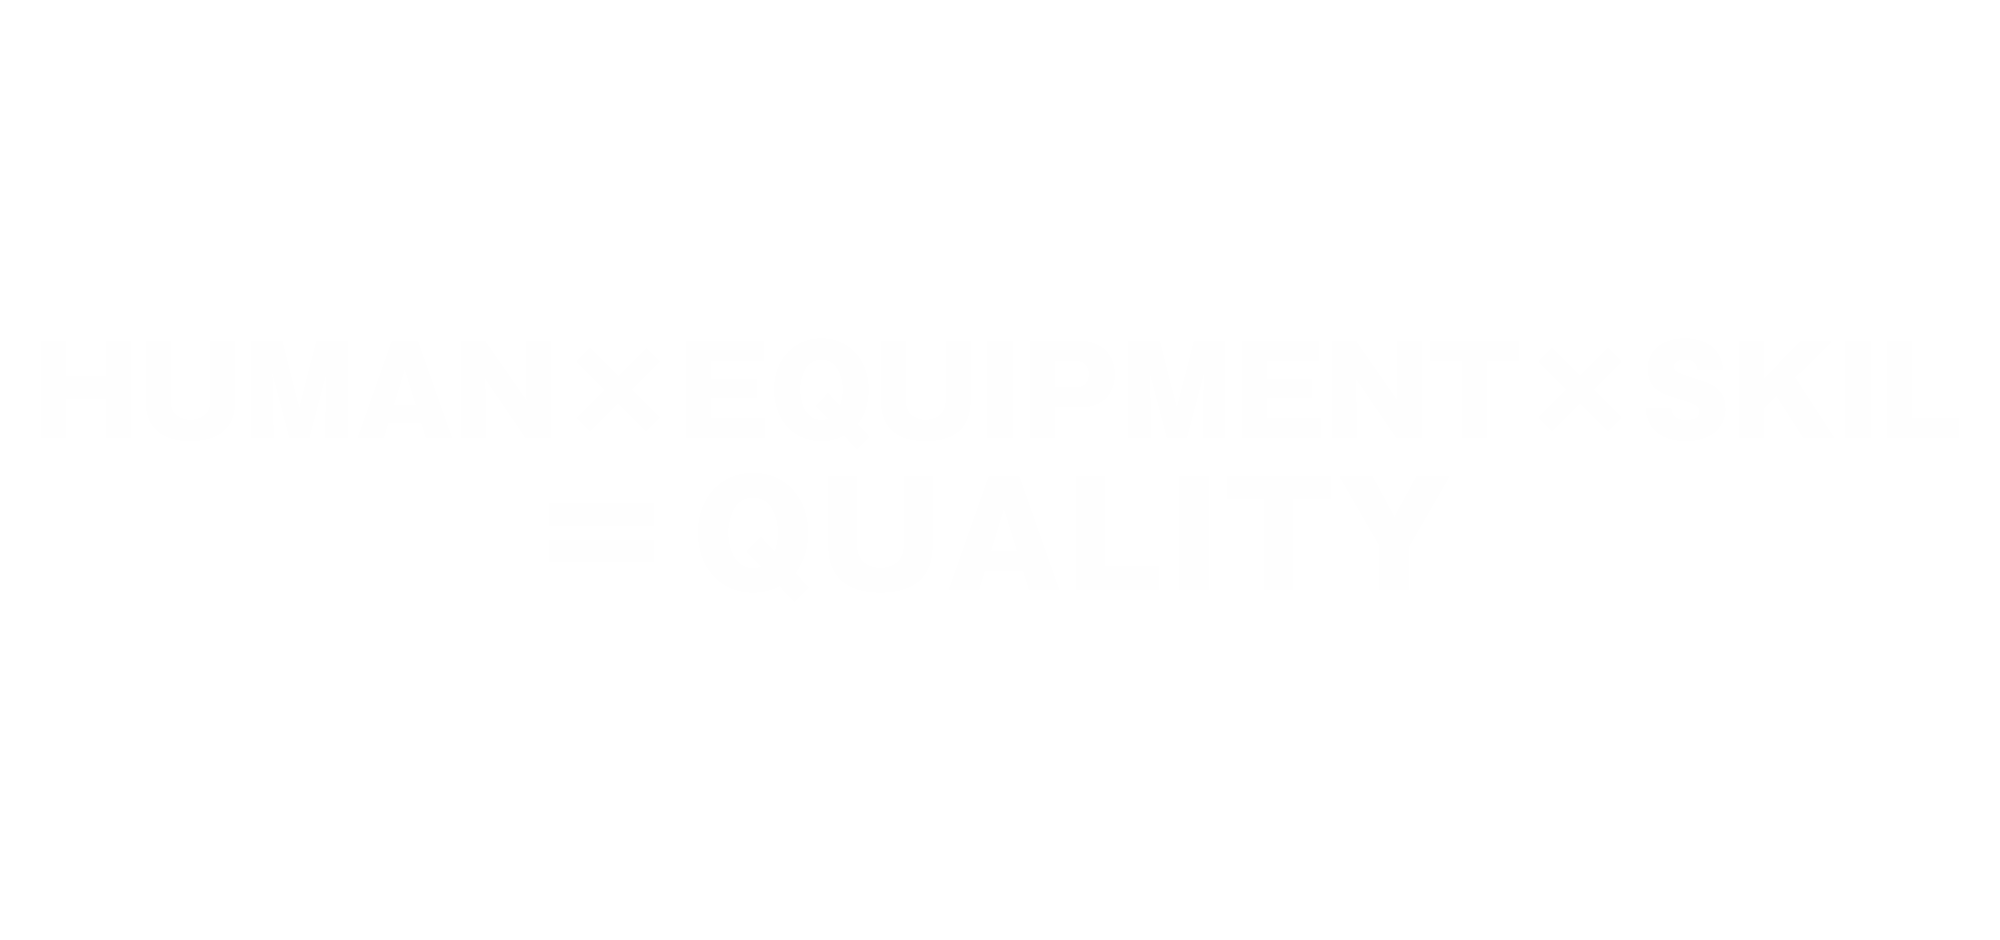 HUMAN×EQUIPMENT×SKIL =QUALITY ヒト、モノ、スキルを繋げる Creative Commons